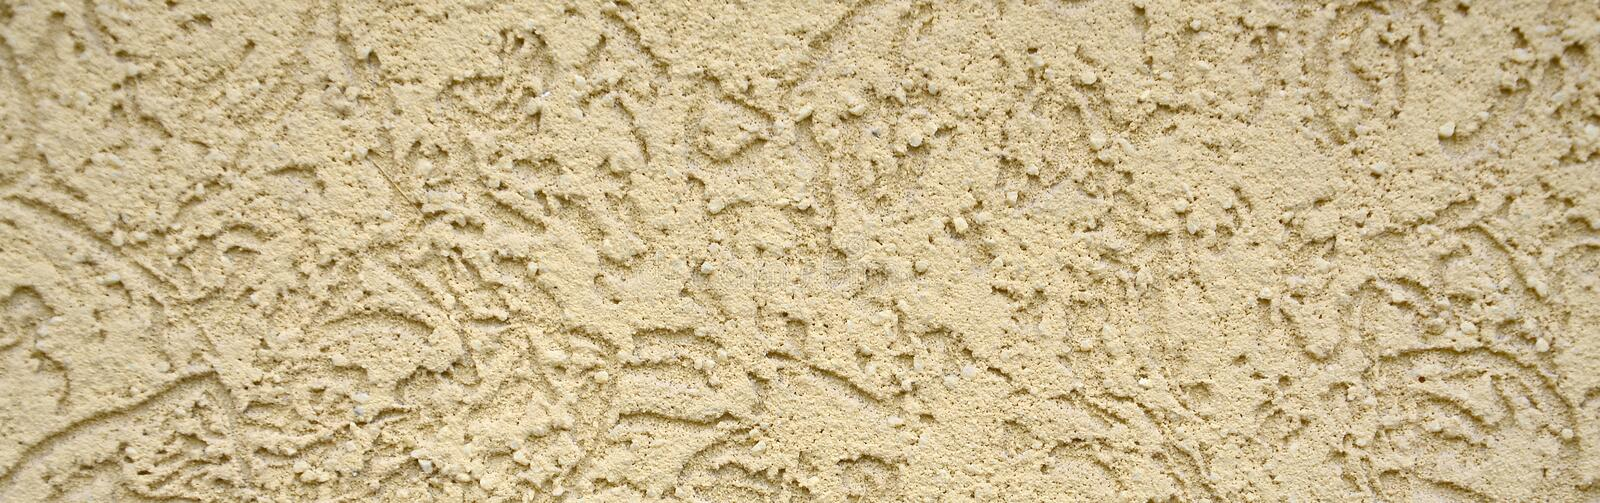 The texture of the beige decorative plaster in bark beetle style. Russian variation of decorating facade walls stock images